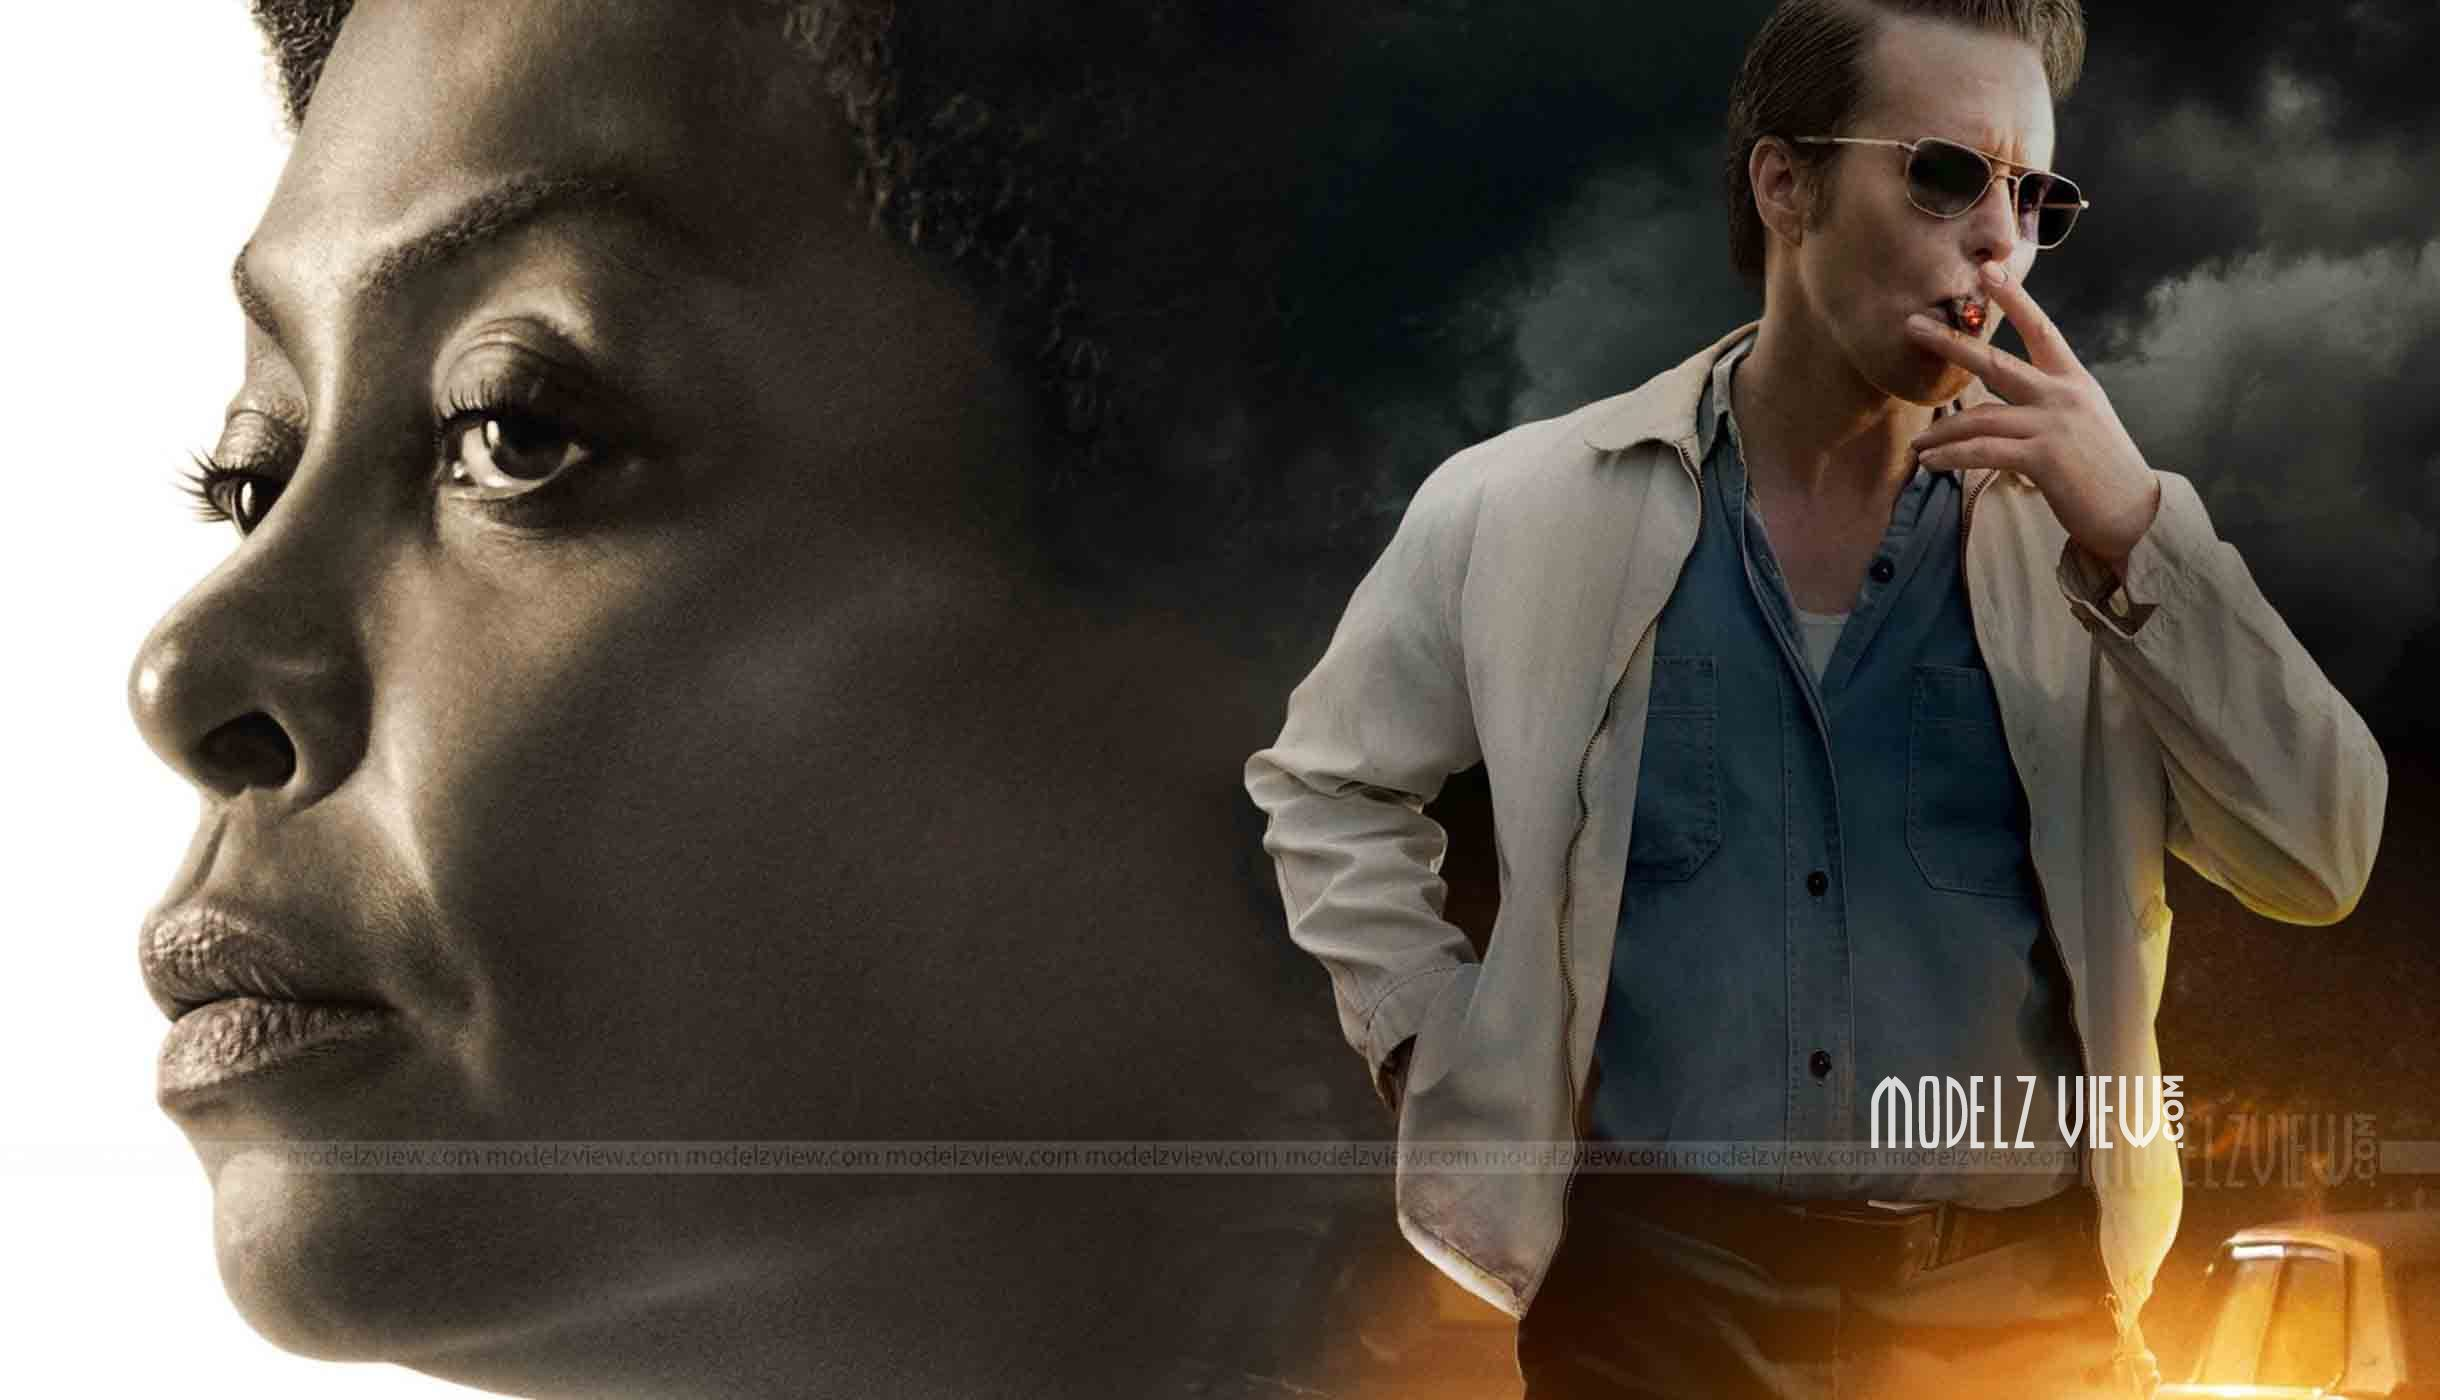 'The Best of Enemies': release date, trailer, cast, and everything we know so far